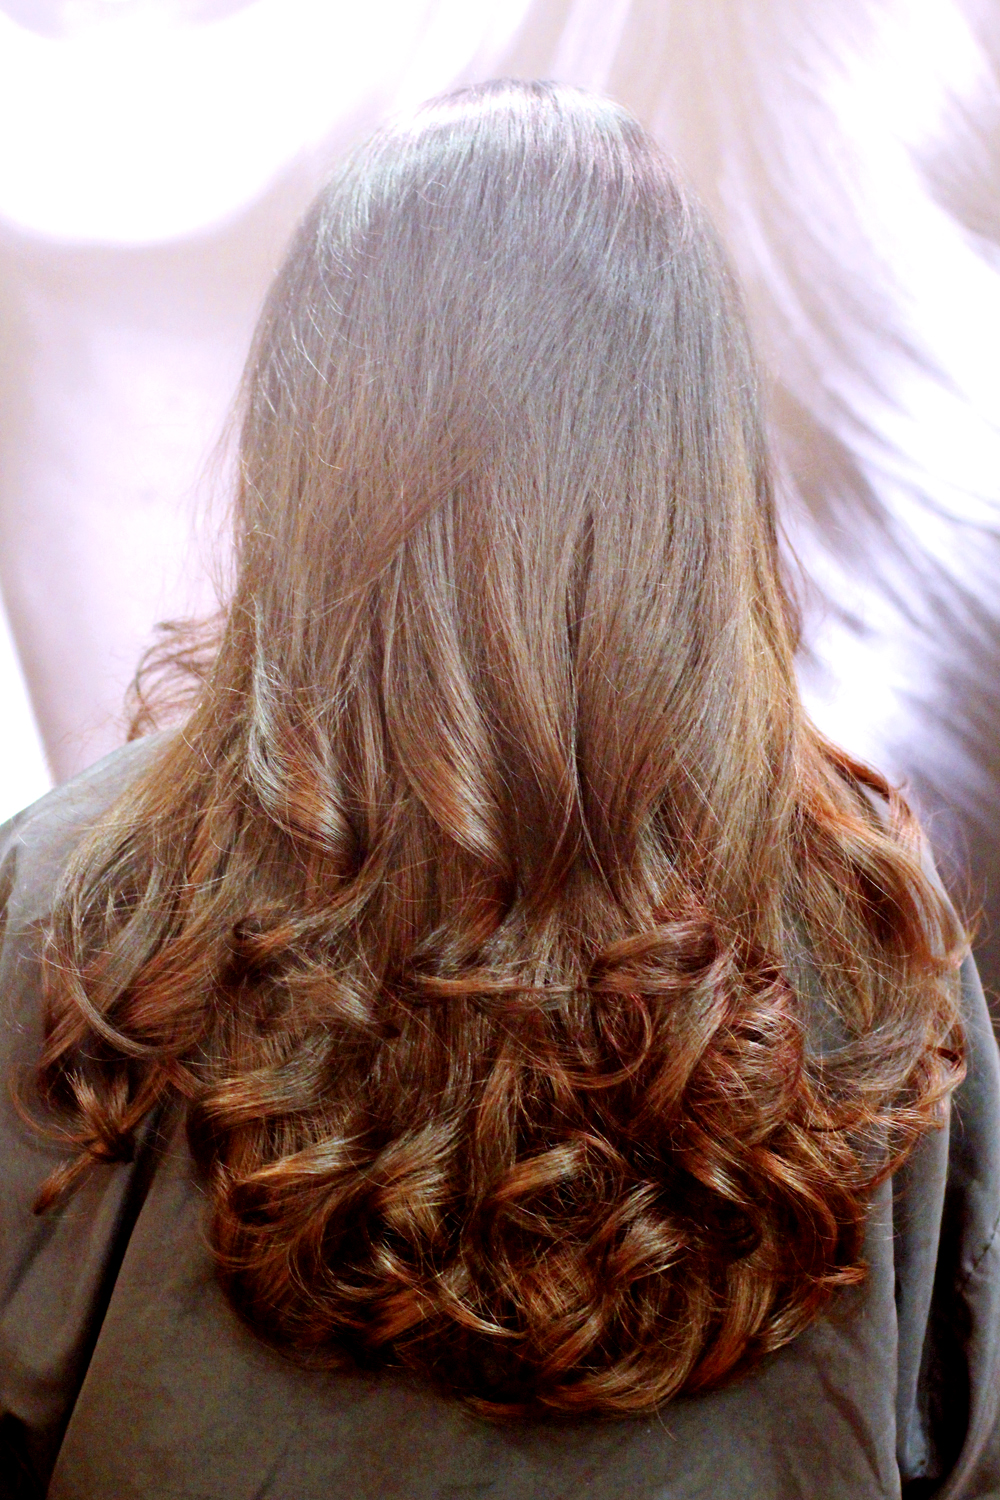 Bouncy blowdry at Rush Hair Salon, Kings Cross - London beauty blog